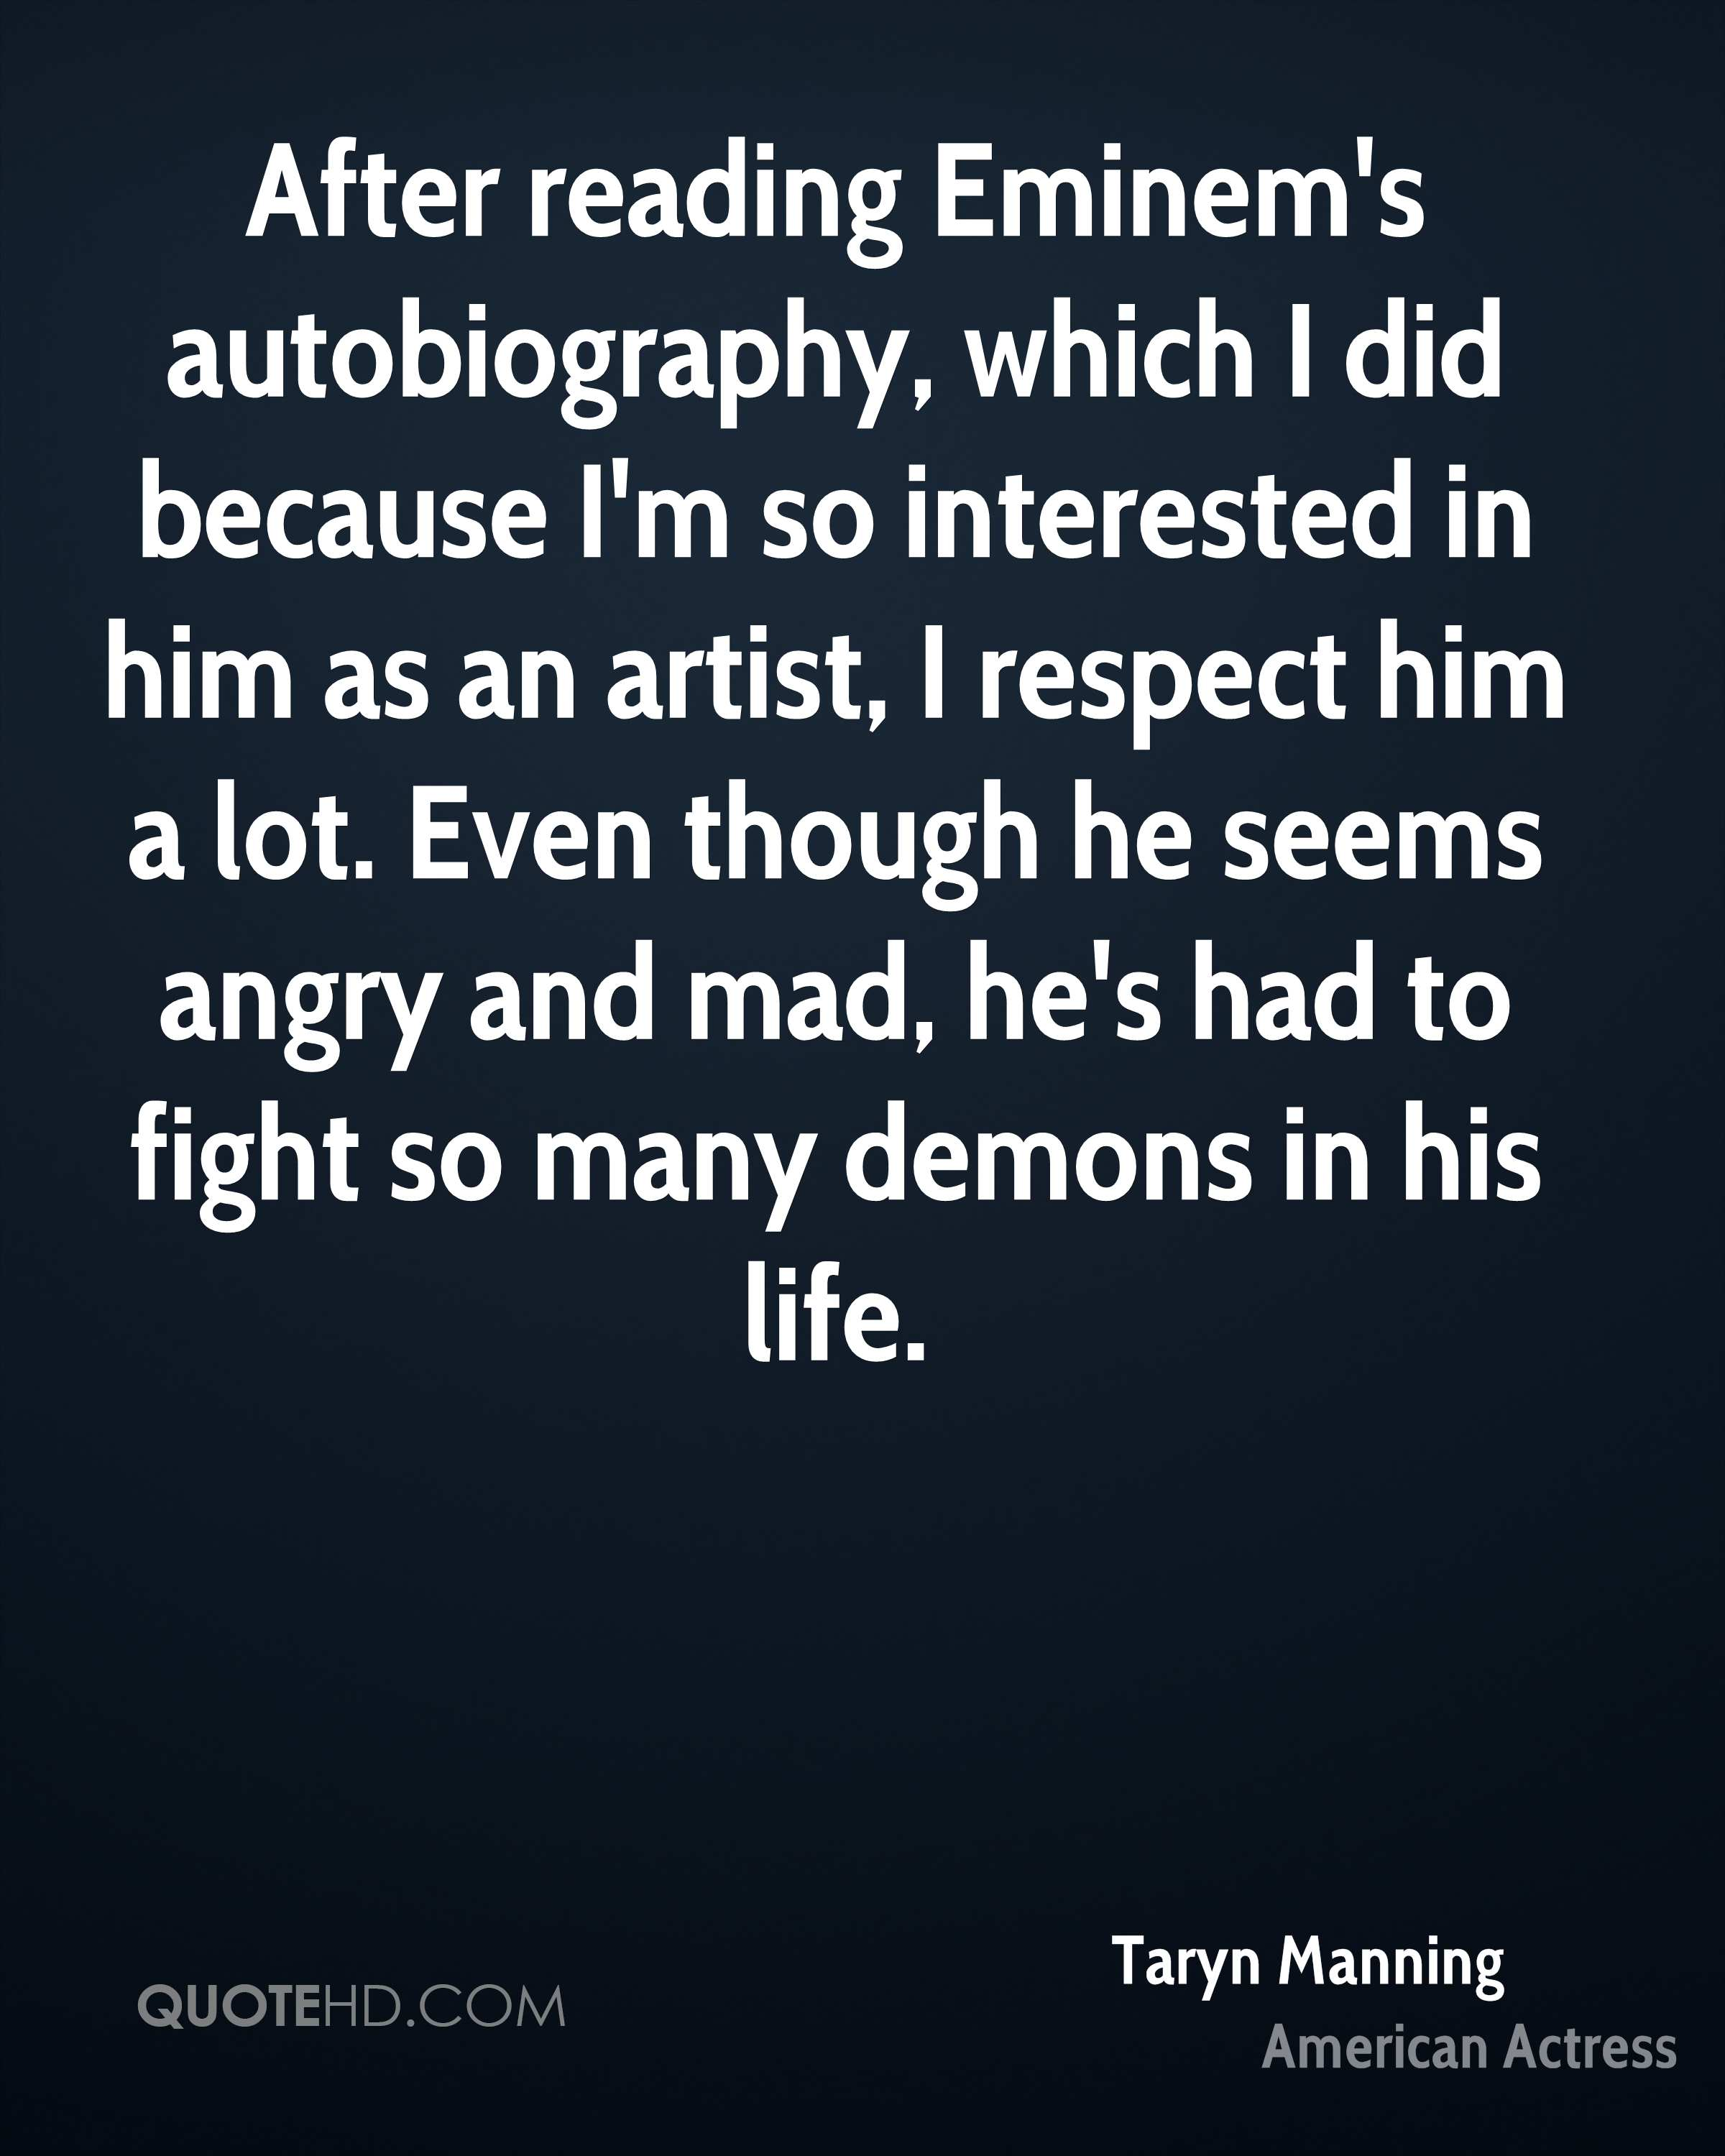 After reading Eminem's autobiography, which I did because I'm so interested in him as an artist, I respect him a lot. Even though he seems angry and mad, he's had to fight so many demons in his life.